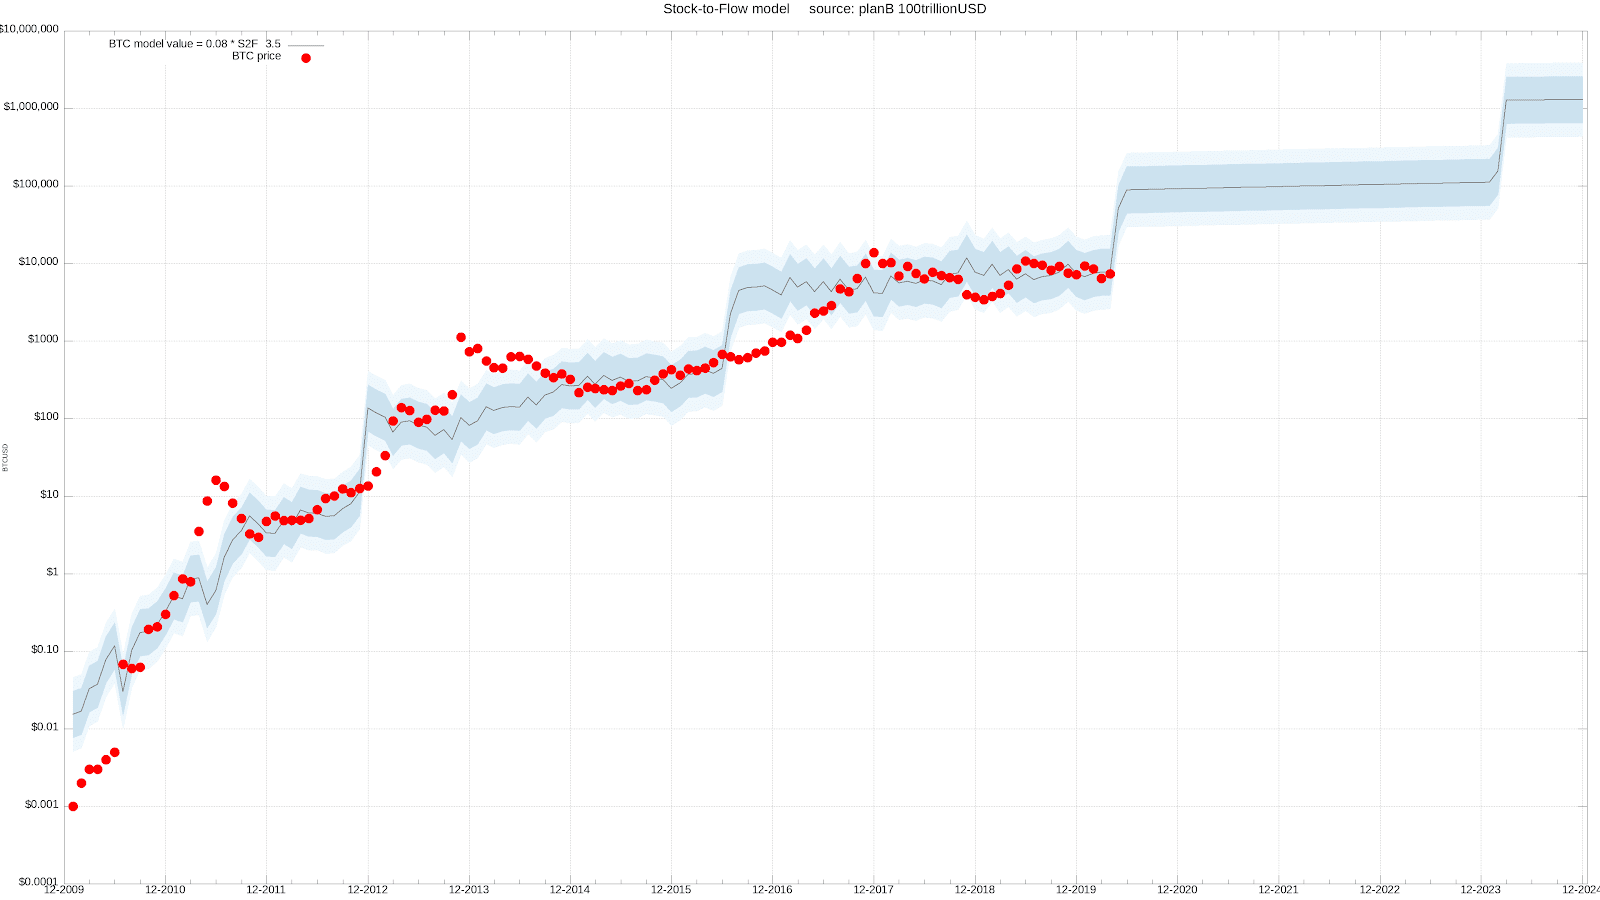 Grafico dello Stock-to-Flow di Bitcoin